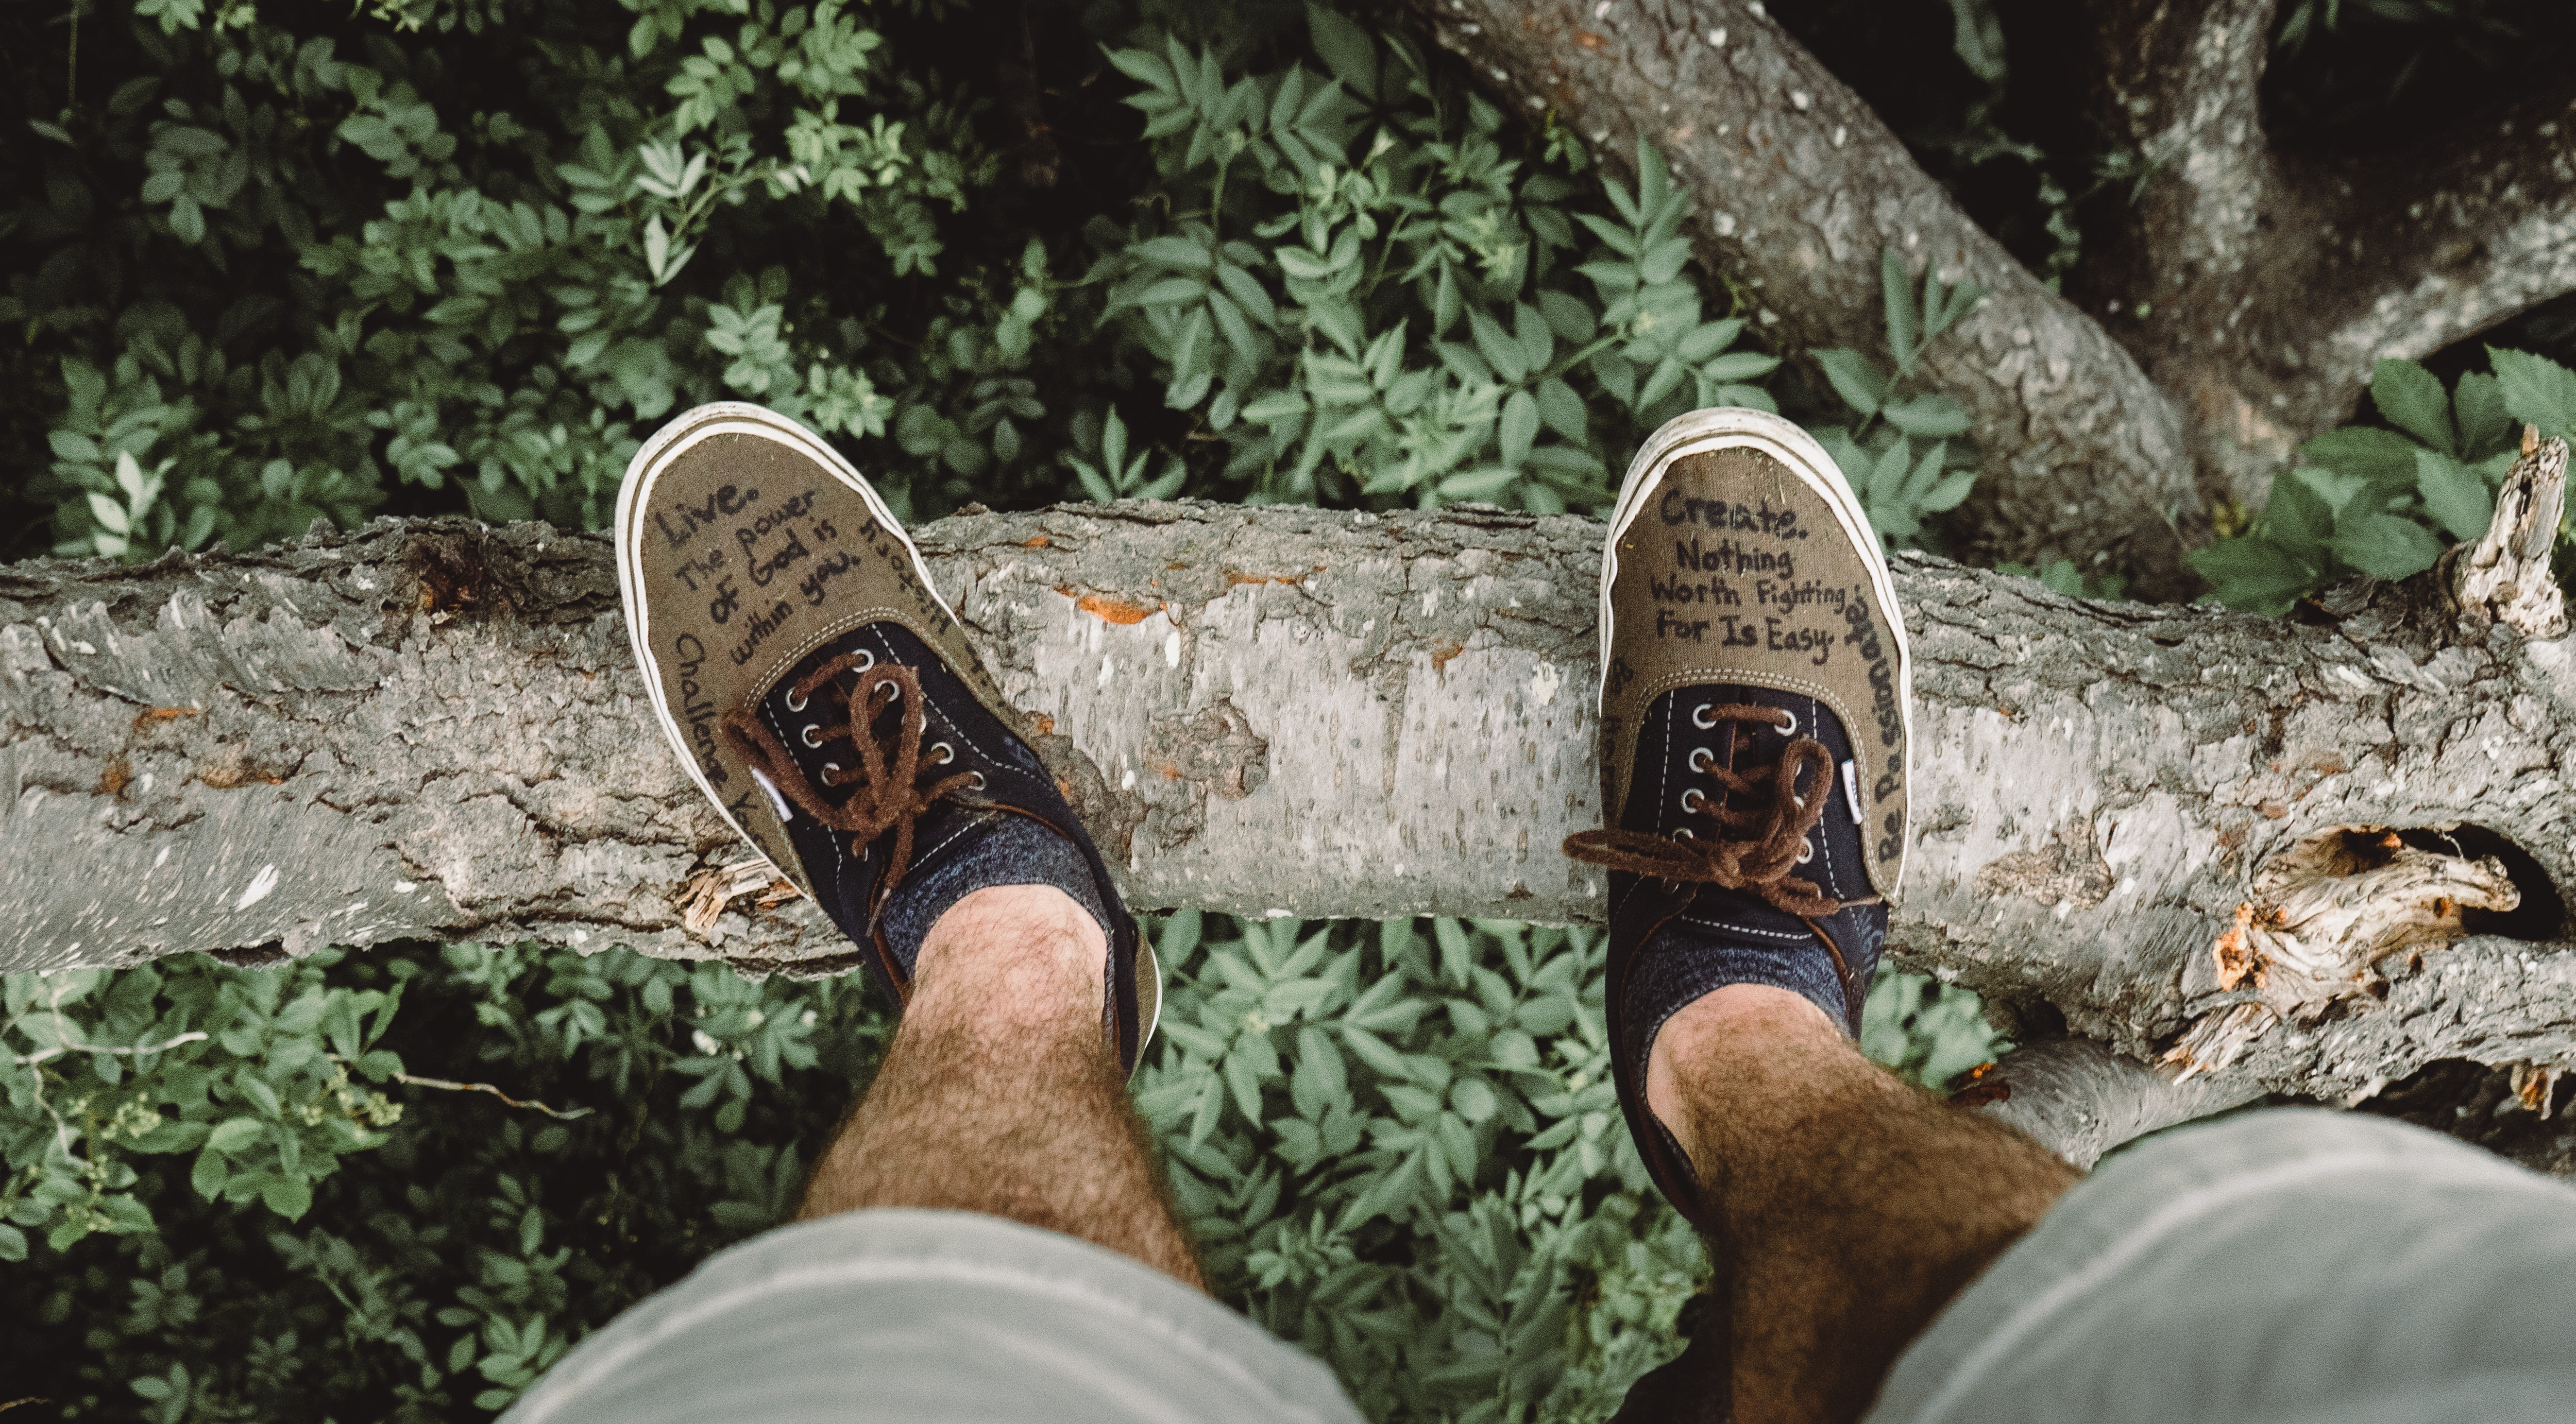 Man legs standing on the edge of a cliff with motivational quotes on his shoes.